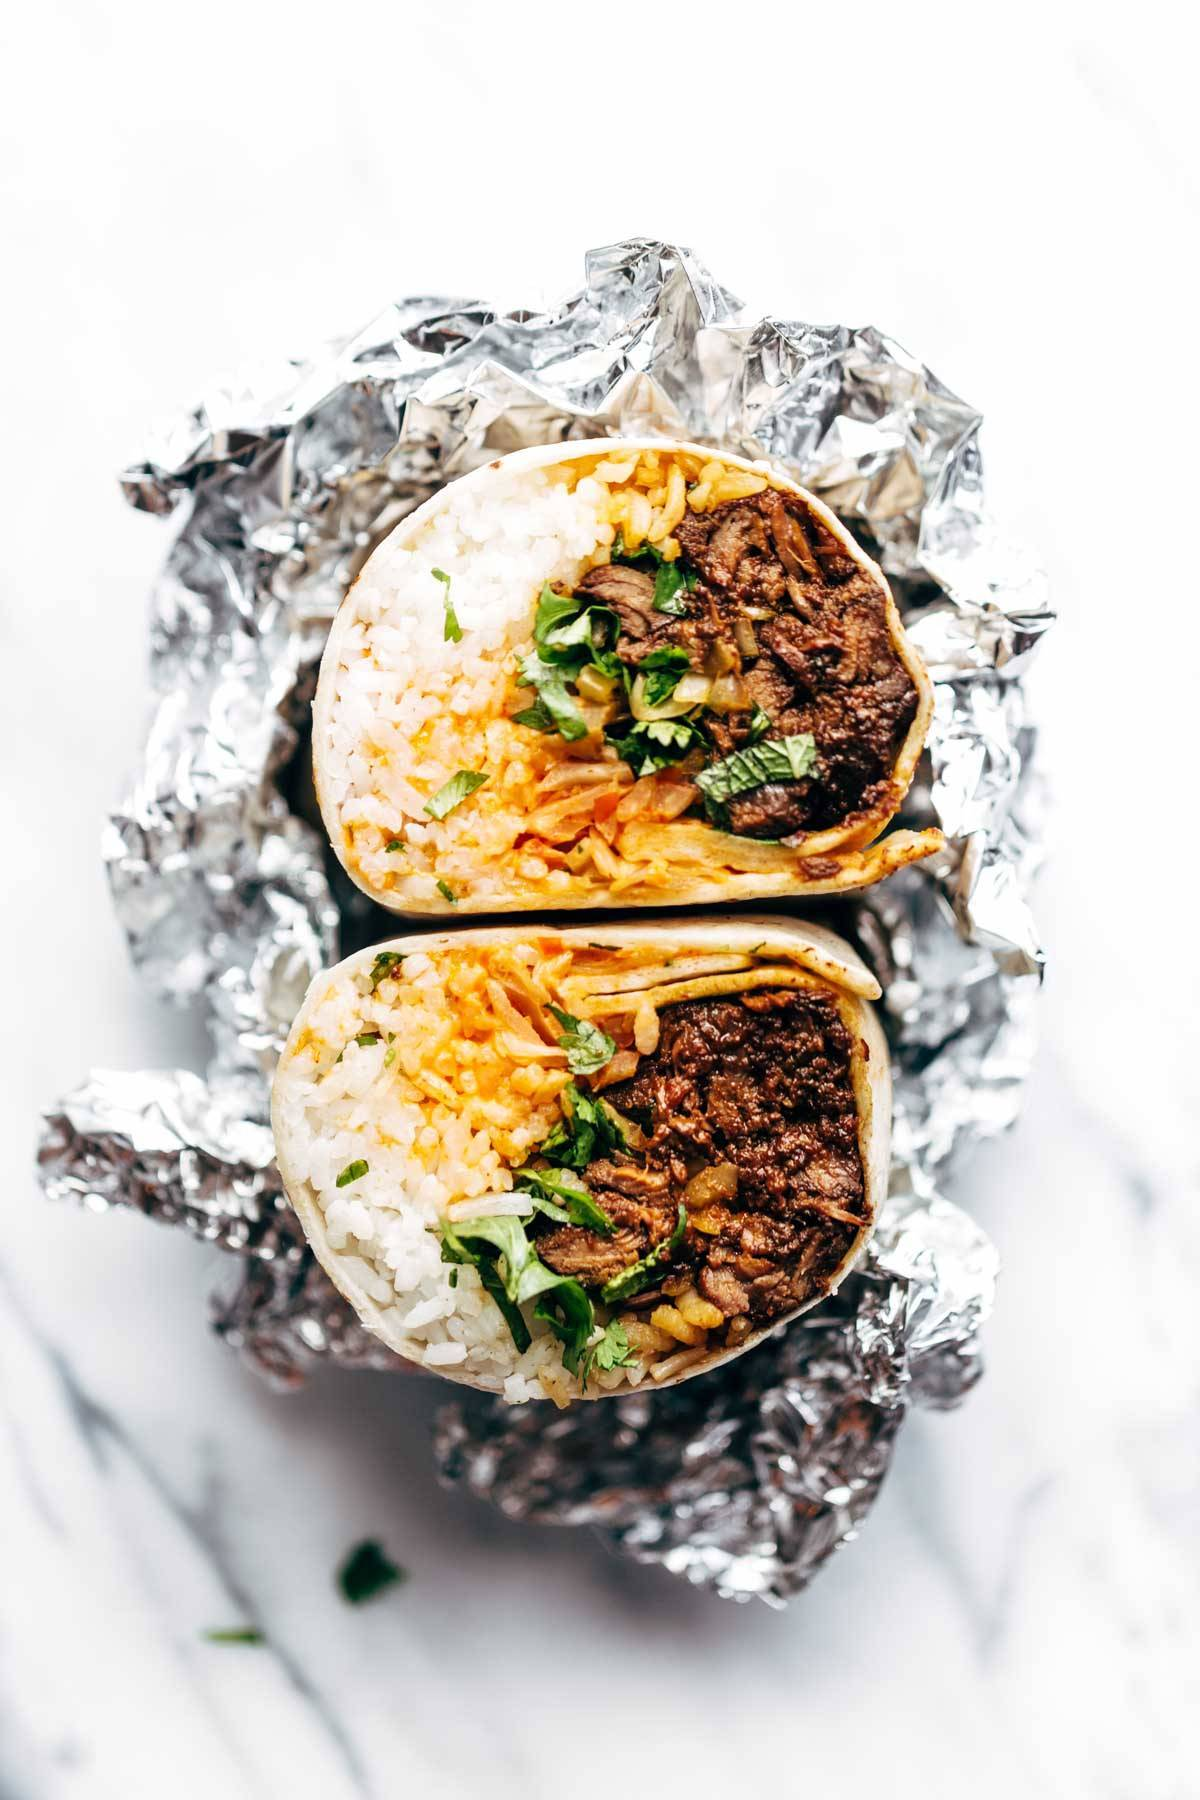 Korean BBQ Burrito wrapped in foil.